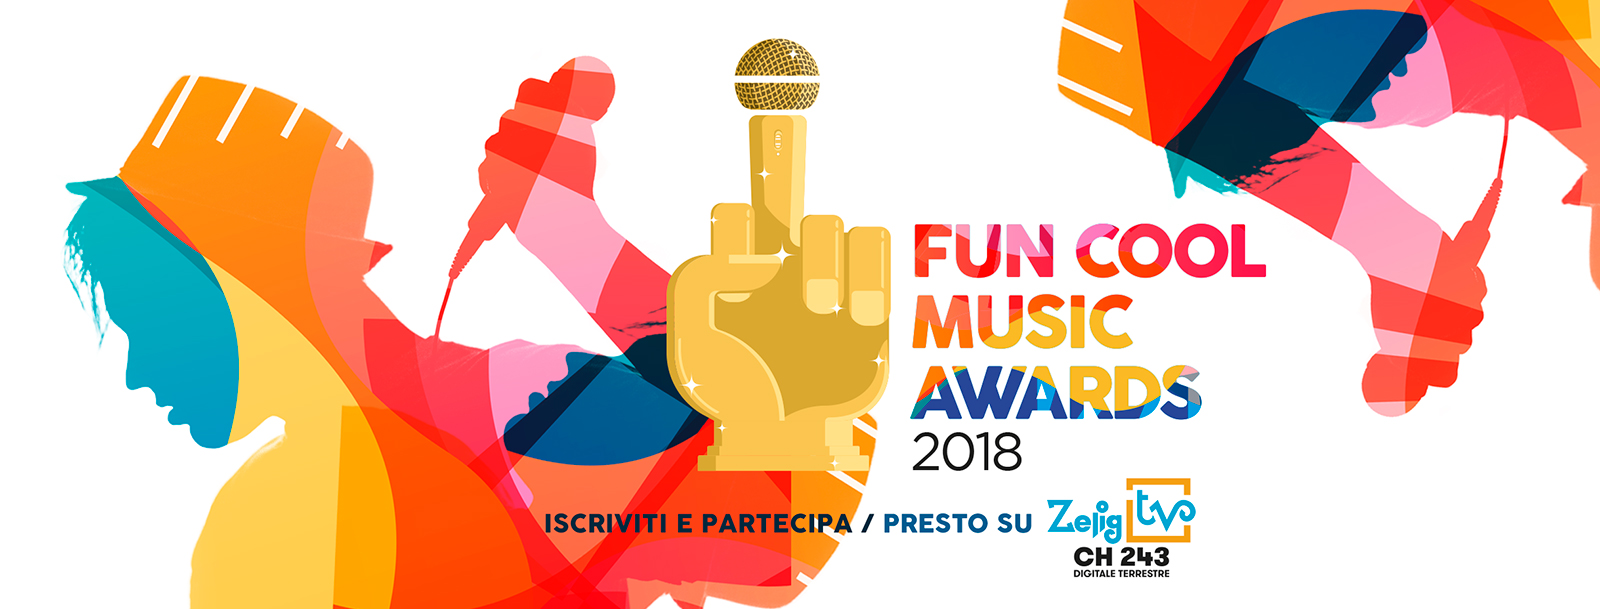 Fun Cool Music Awards